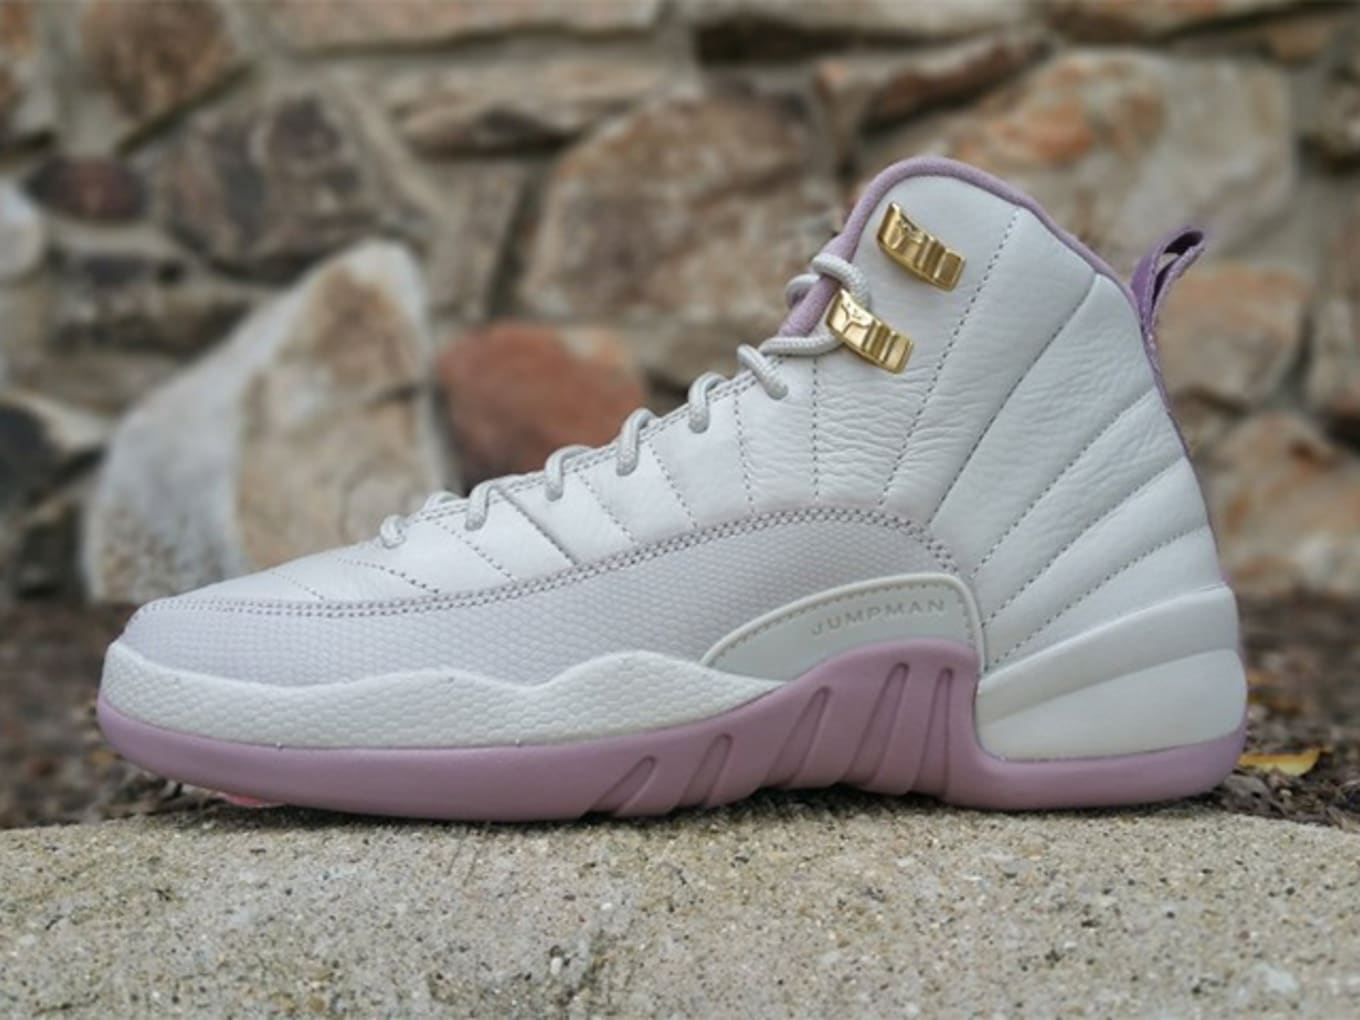 042ddfa3d41f64 Air Jordan 12 GG Plum Fog Heiress 845028-025